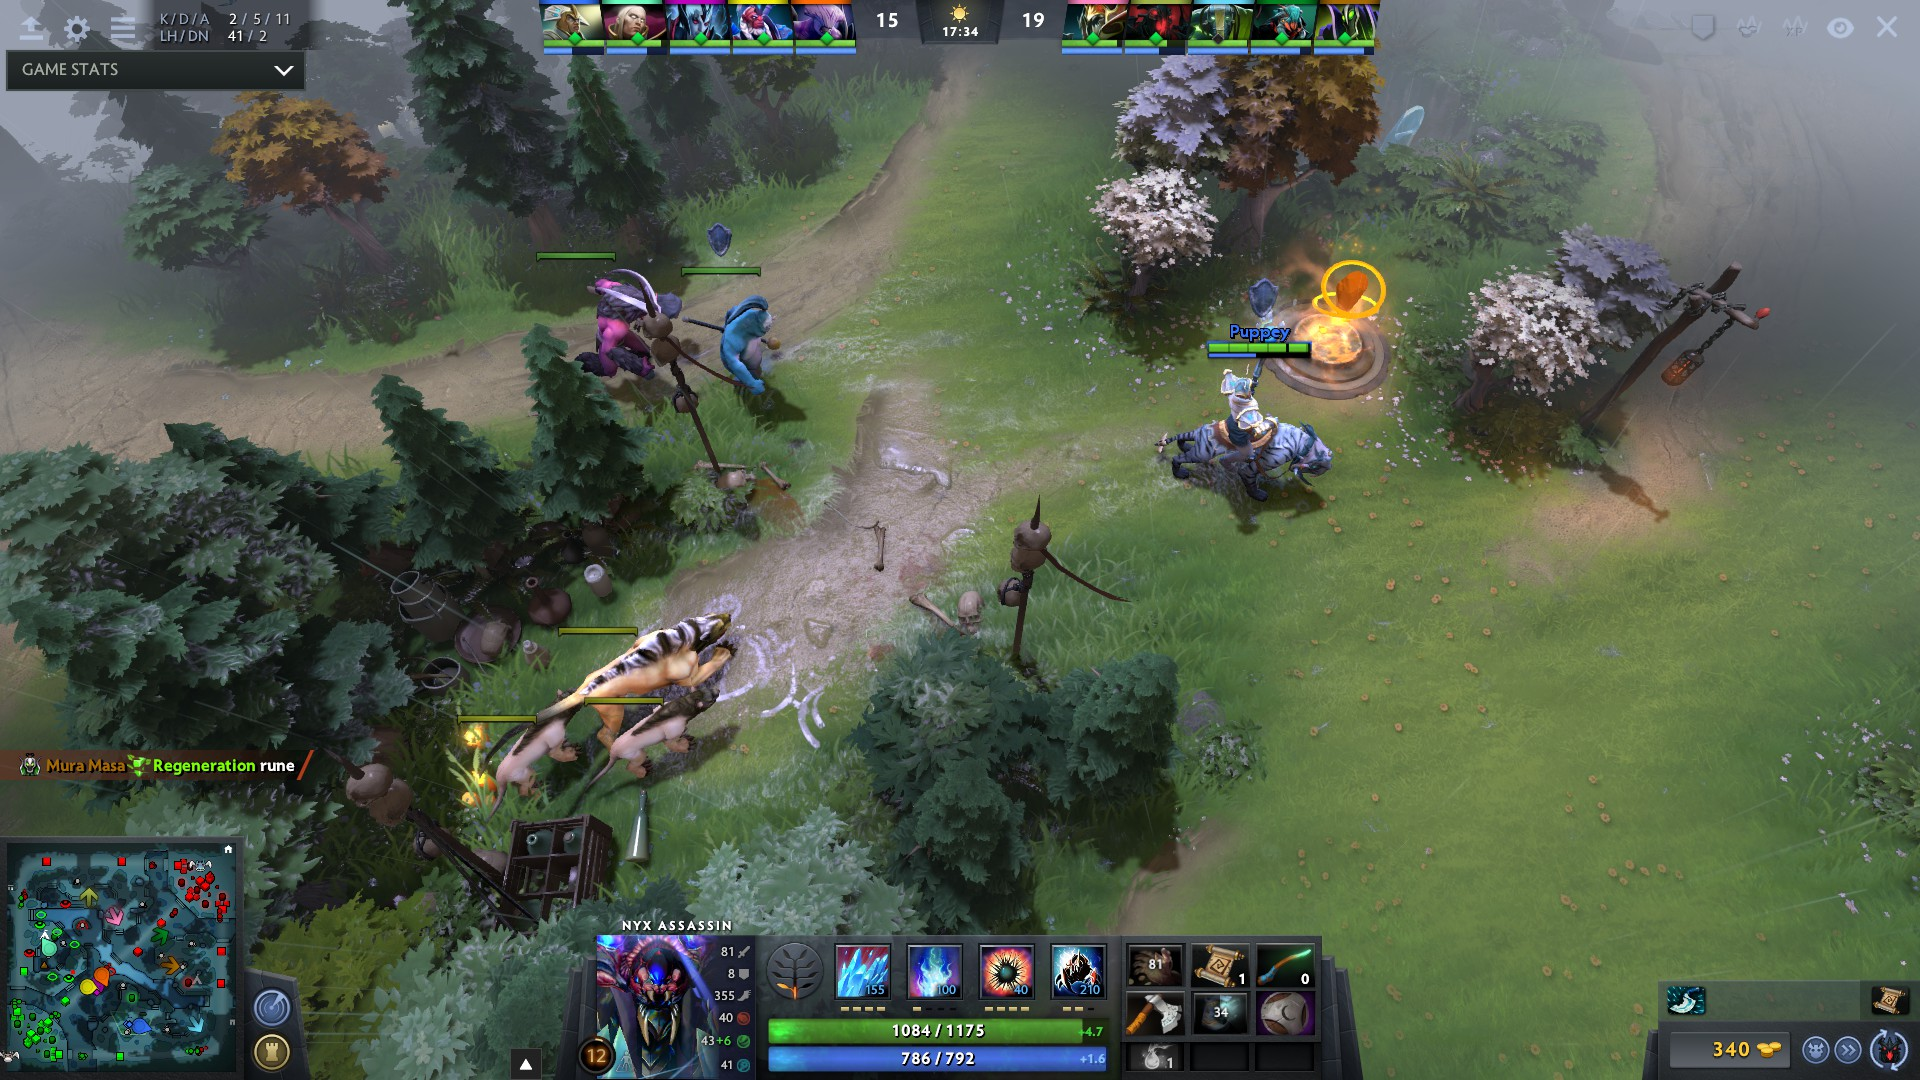 Dota 2: Dota 2 Reborn: Notebook And Desktop Benchmarks